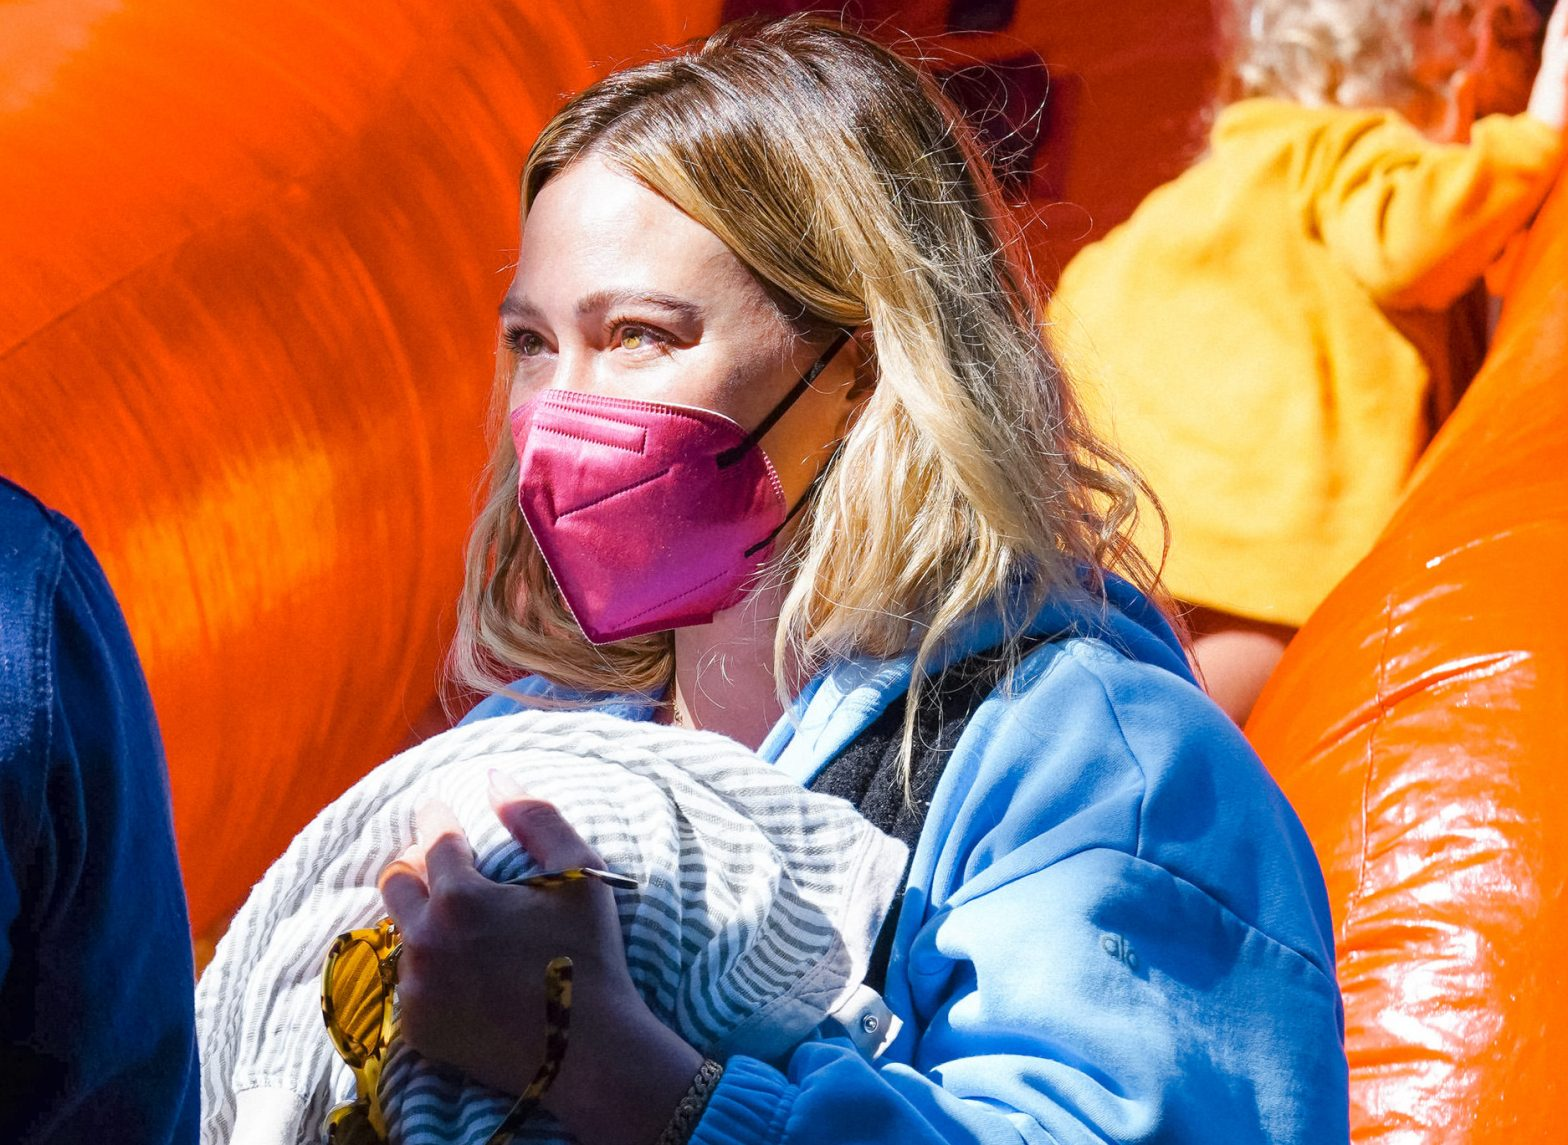 hilary-duff-and-other-celebs-are-obsessed-with-these-pretty-fda-authorized-kn95-masks